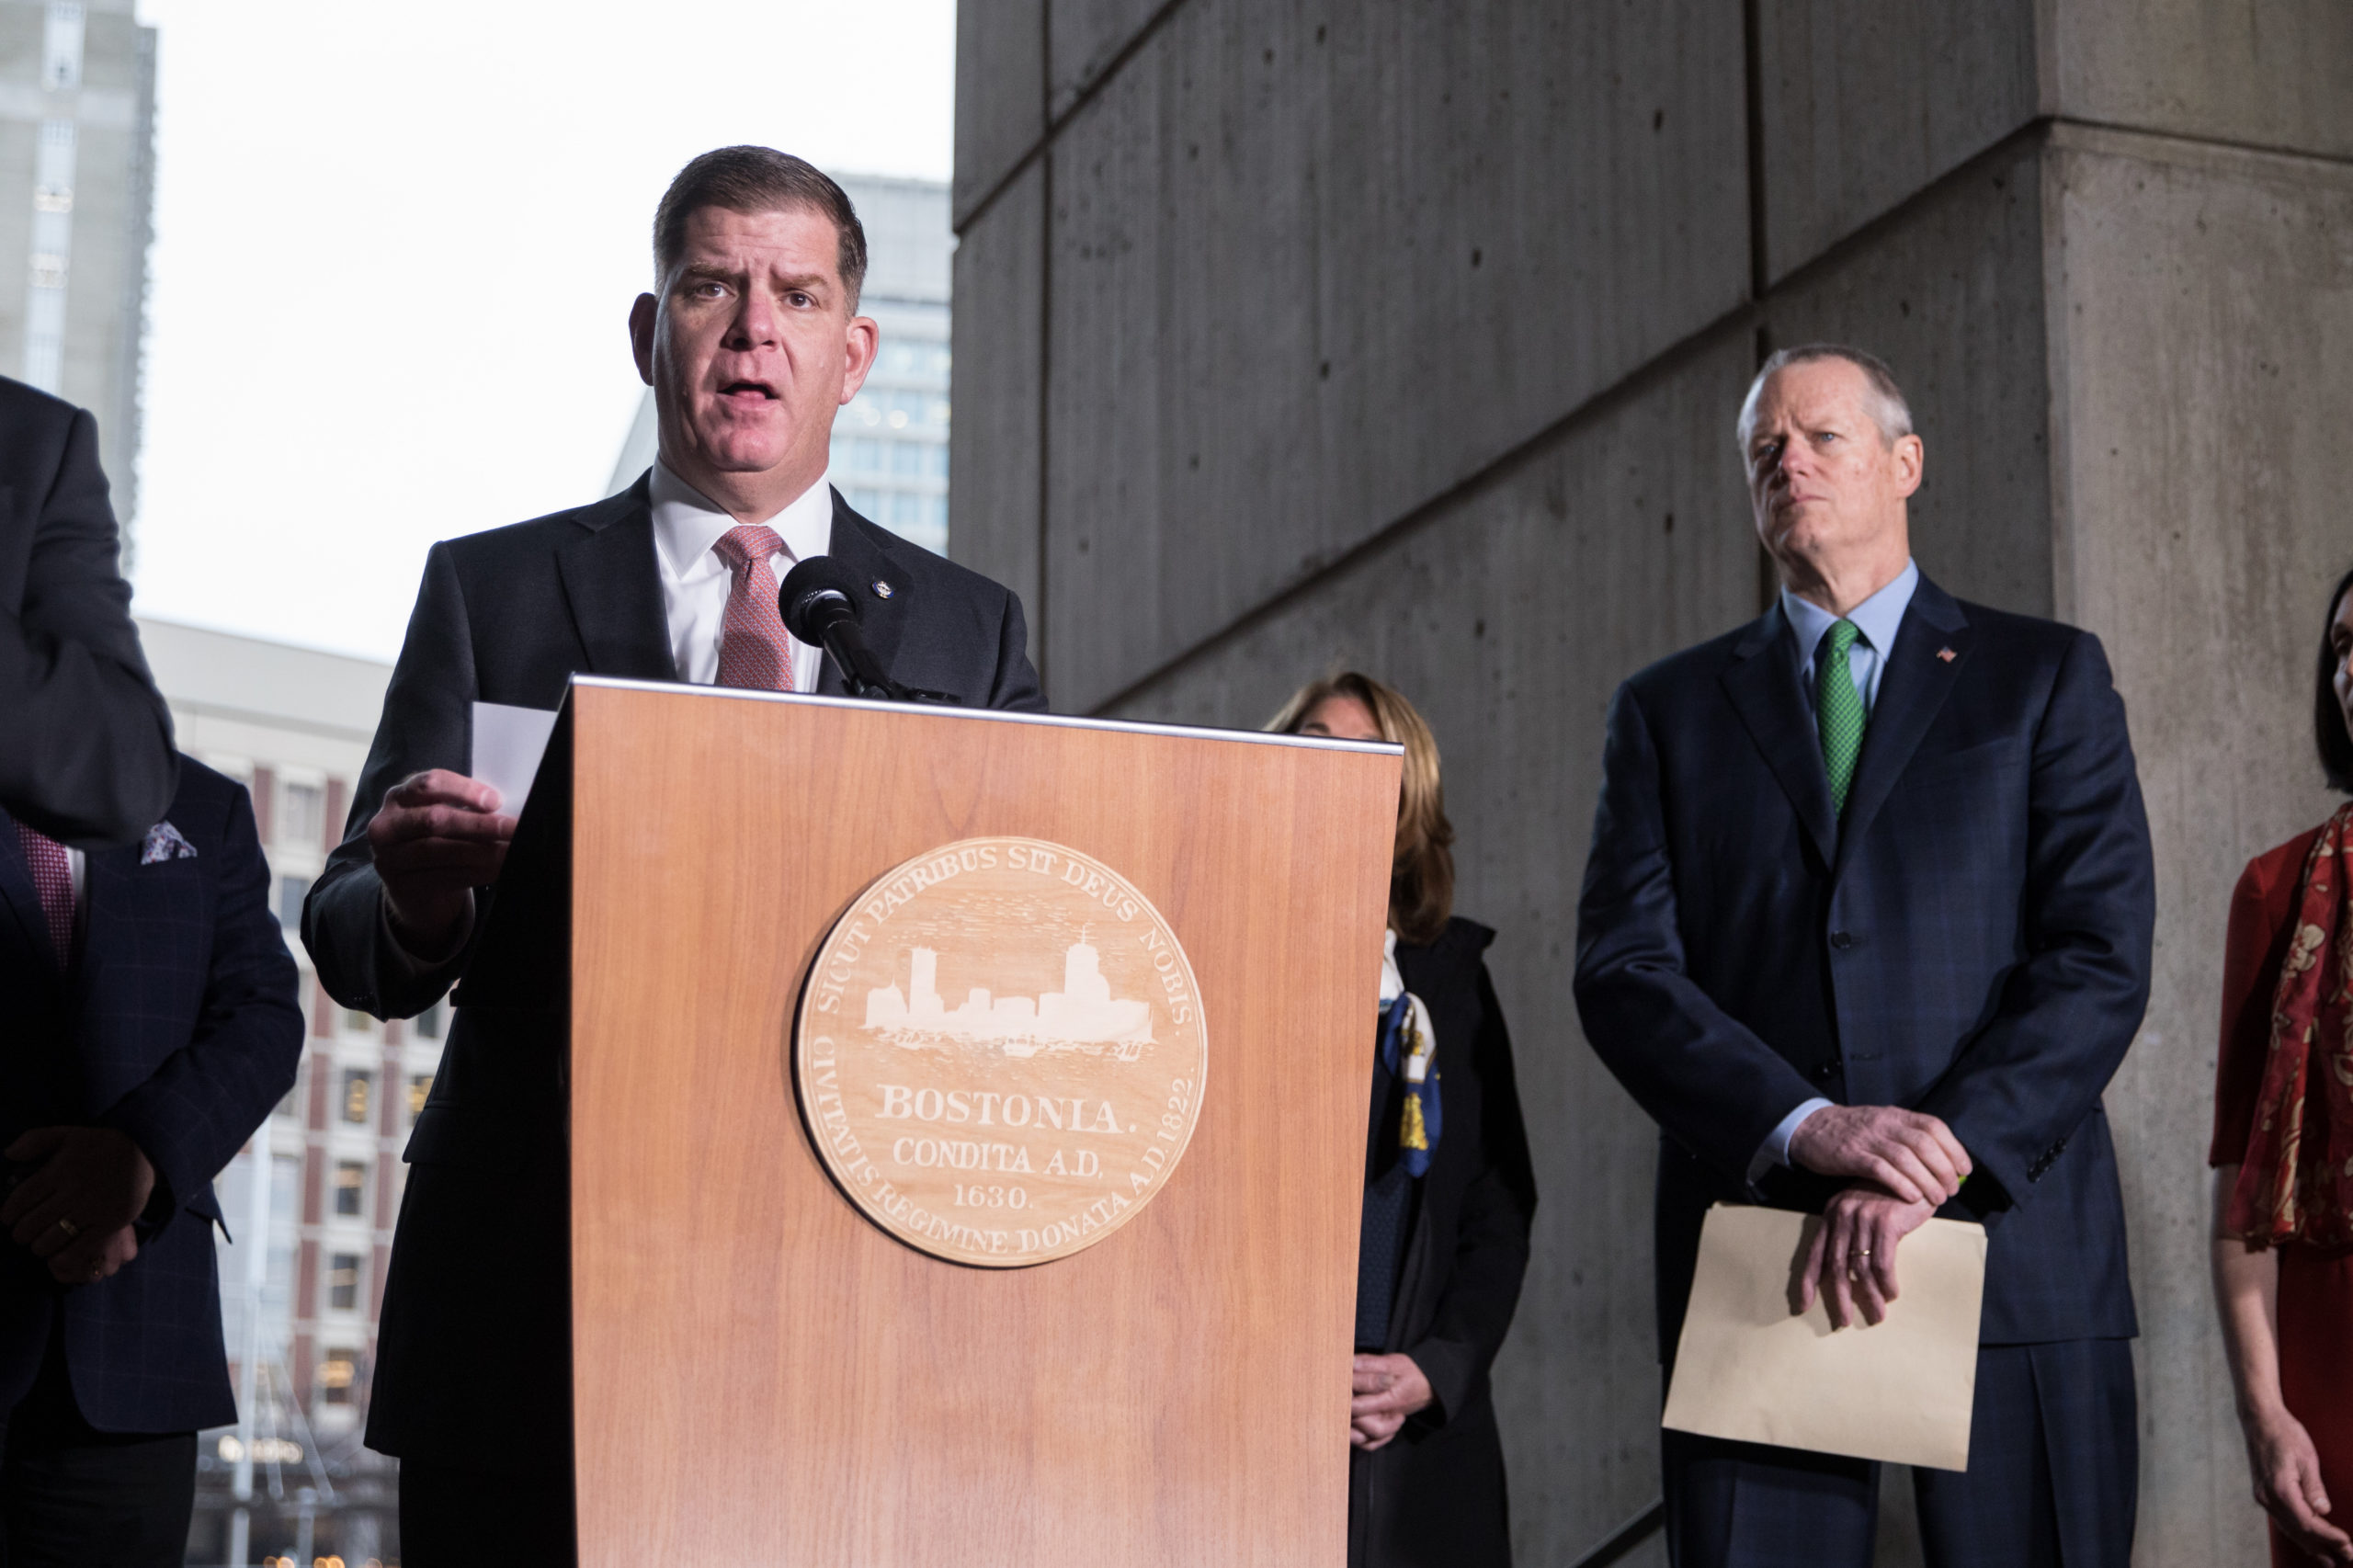 Boston Mayor Marty Walsh, joined by other officials, speaks at a press conference in March. (Scott Eisen/Getty Images)